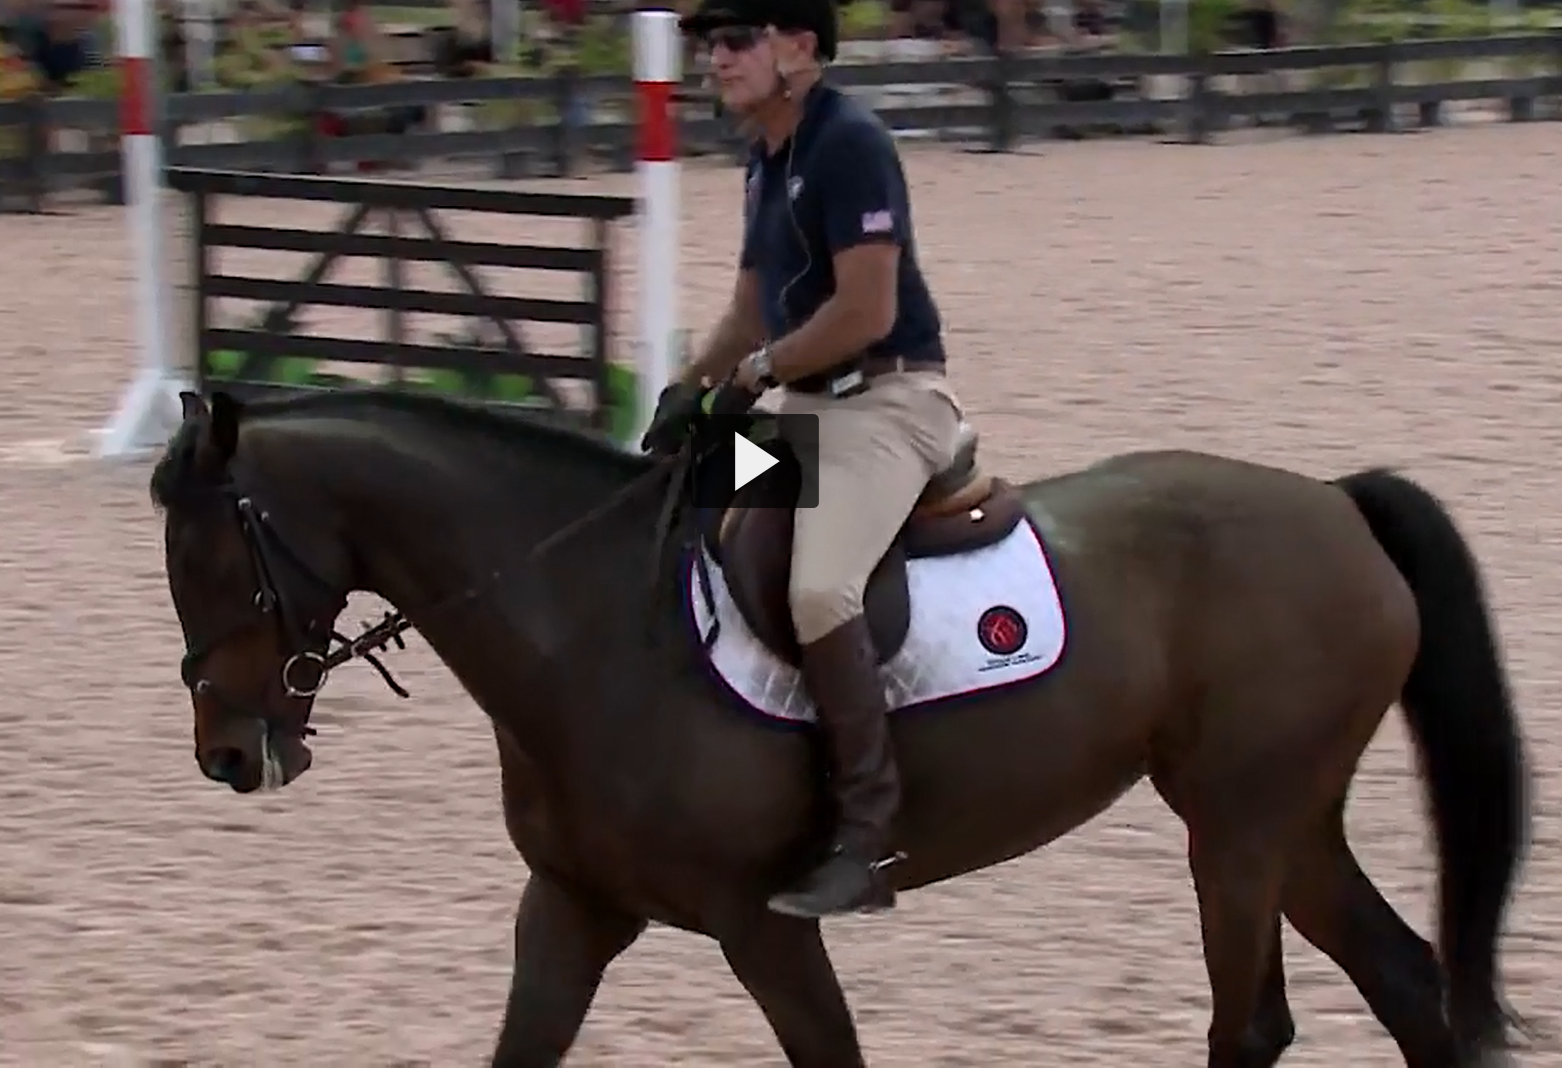 http://www.usefnetwork.com/featured/coverage.aspx?urlkey=2015GMHTS&video=0_uk5tmcrl&playlist=